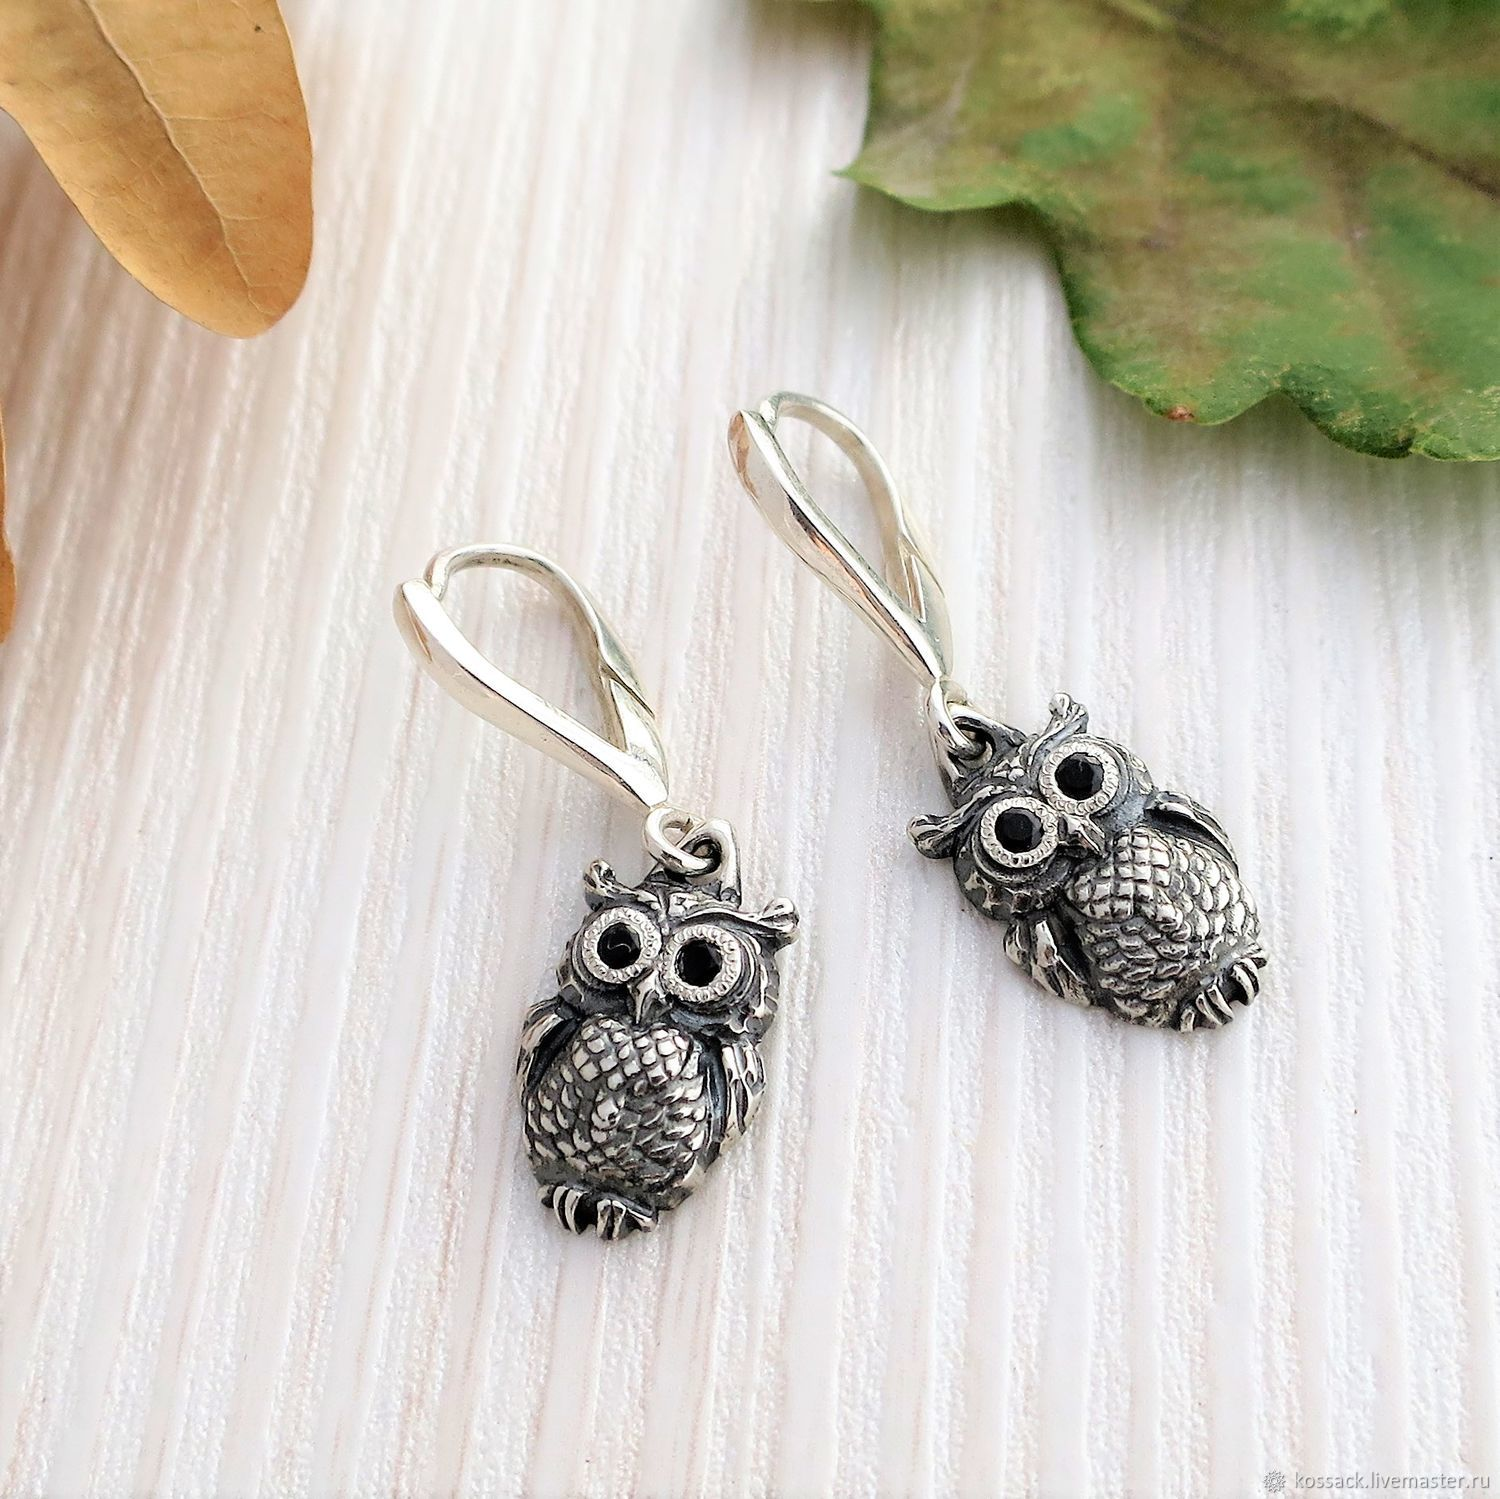 Owls earrings for woman amulet guard, Earrings, Zaporozhye,  Фото №1